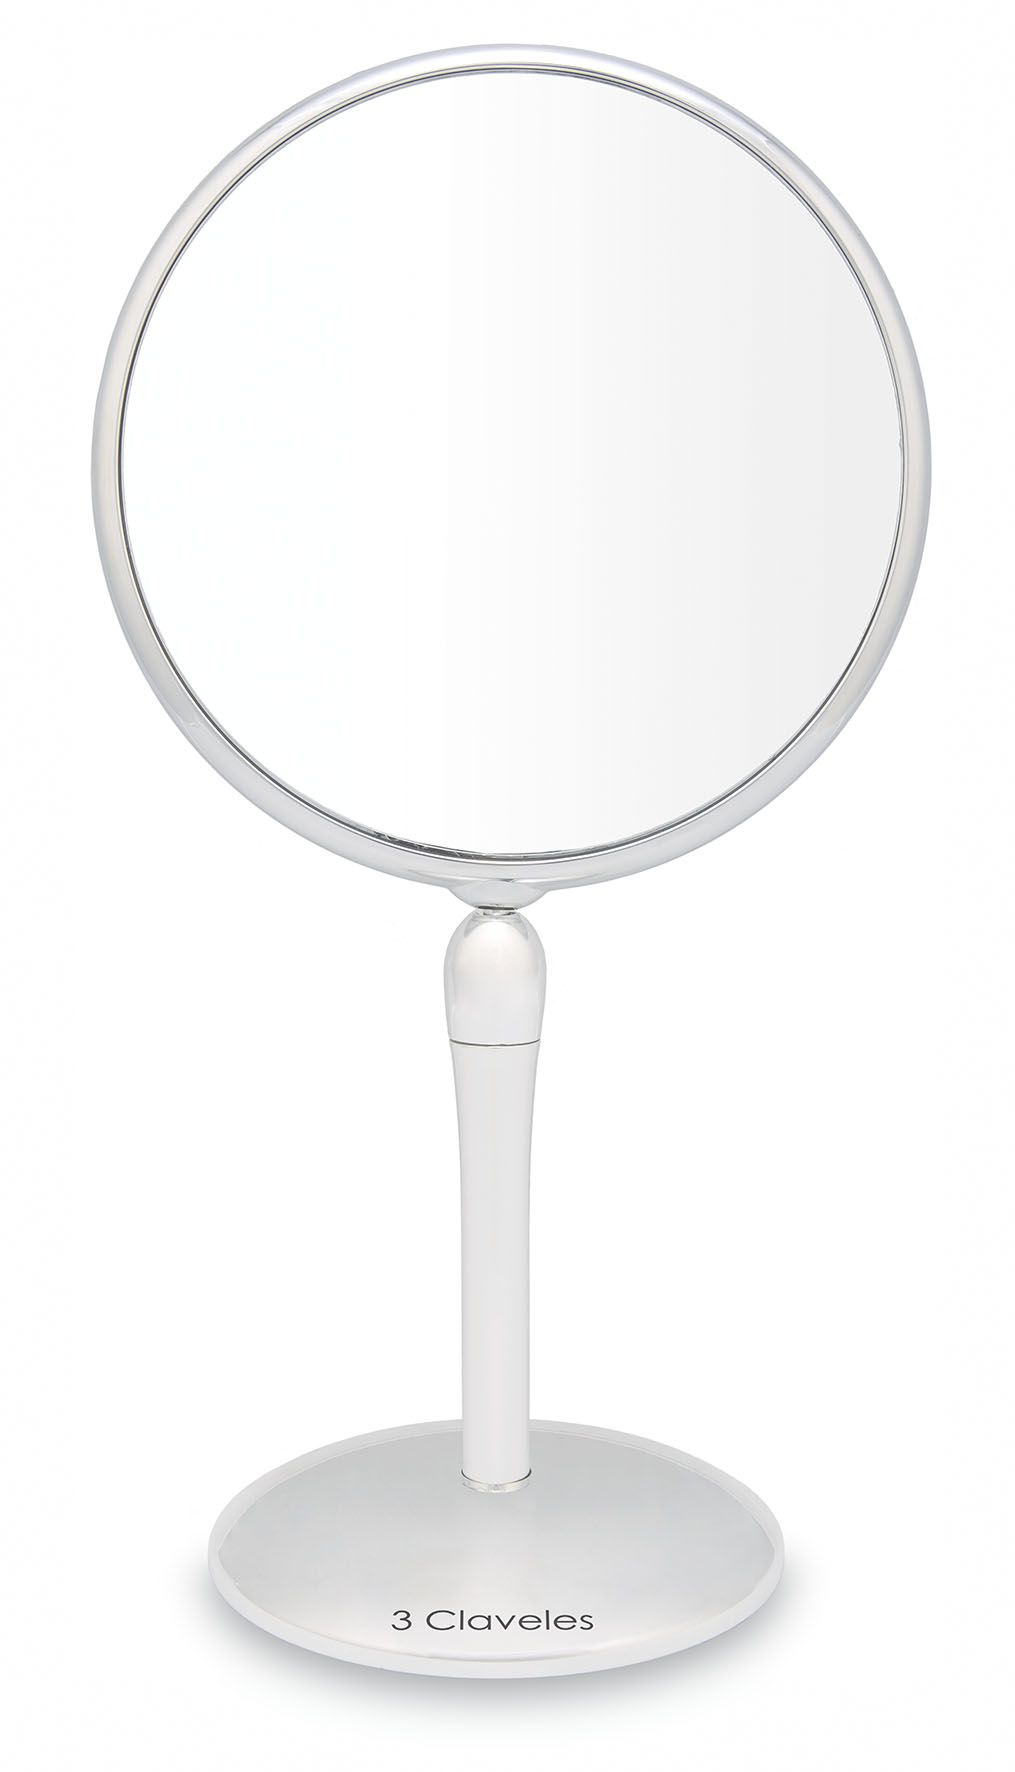 MAGNIFYING MIRROR SWIVEL BASE - Ø 18 cm  - 1x5 3C